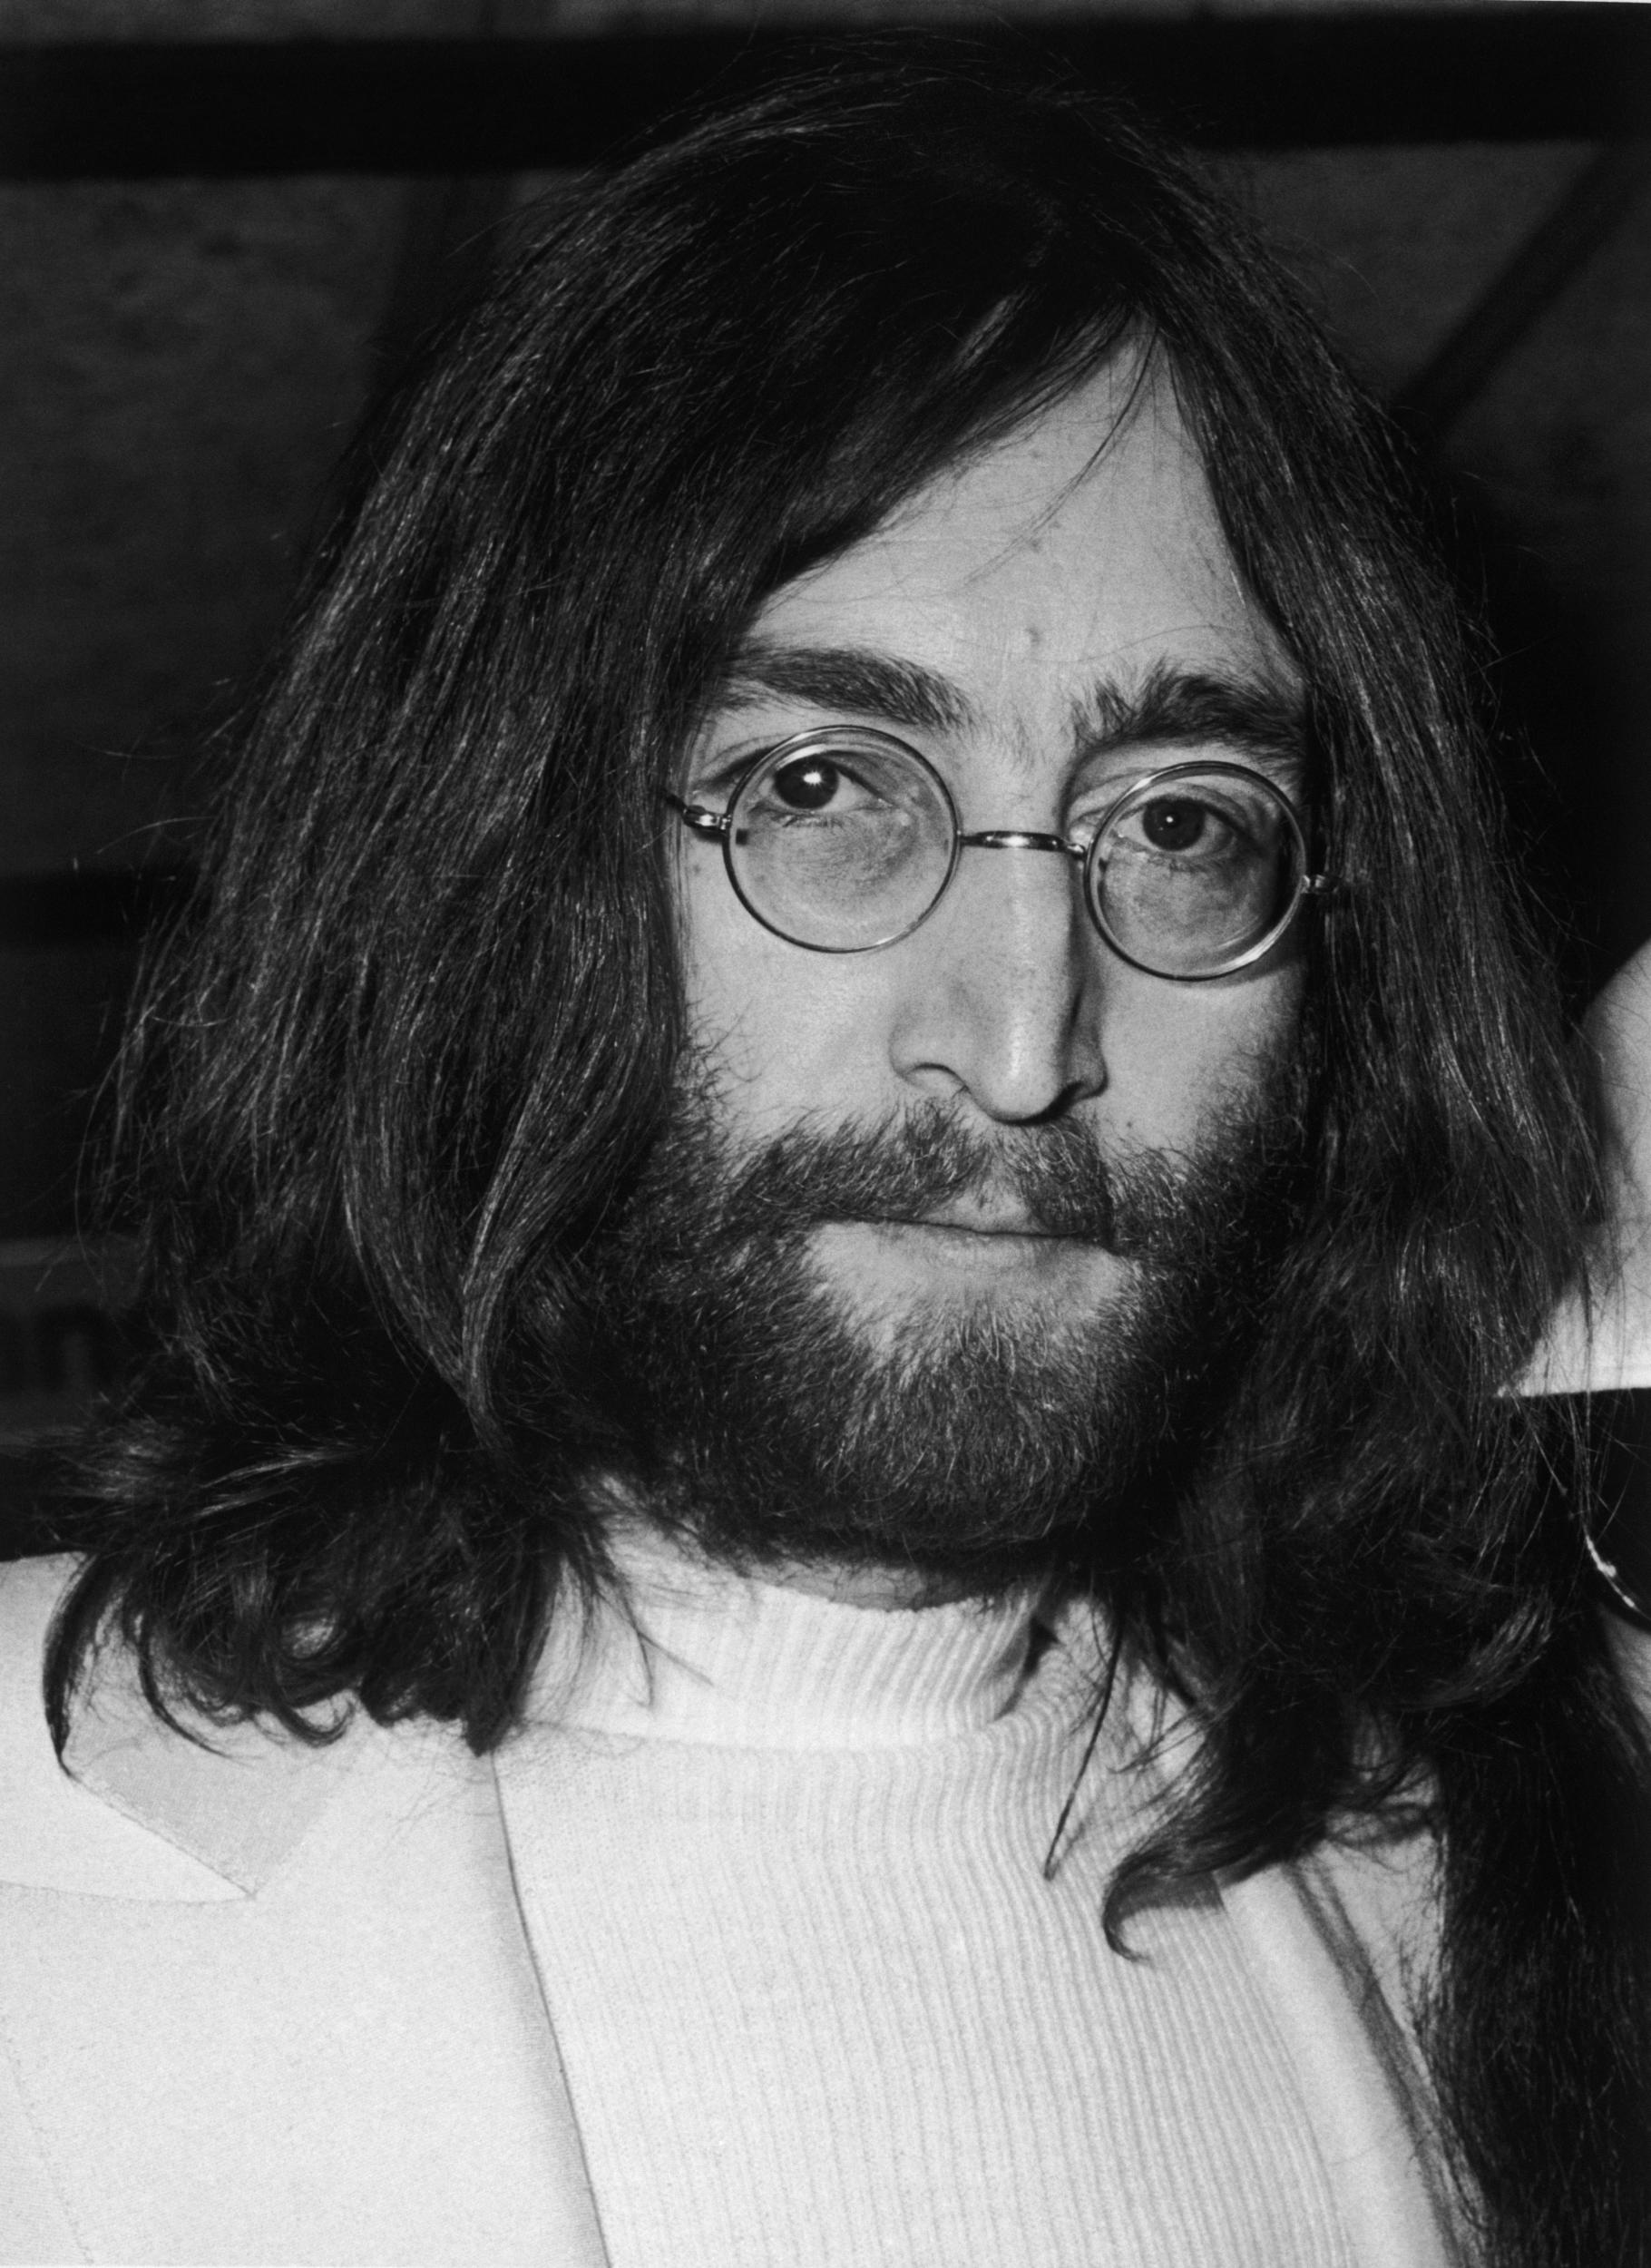 John Lennon 9 Oct 1940 8 Dec 1980